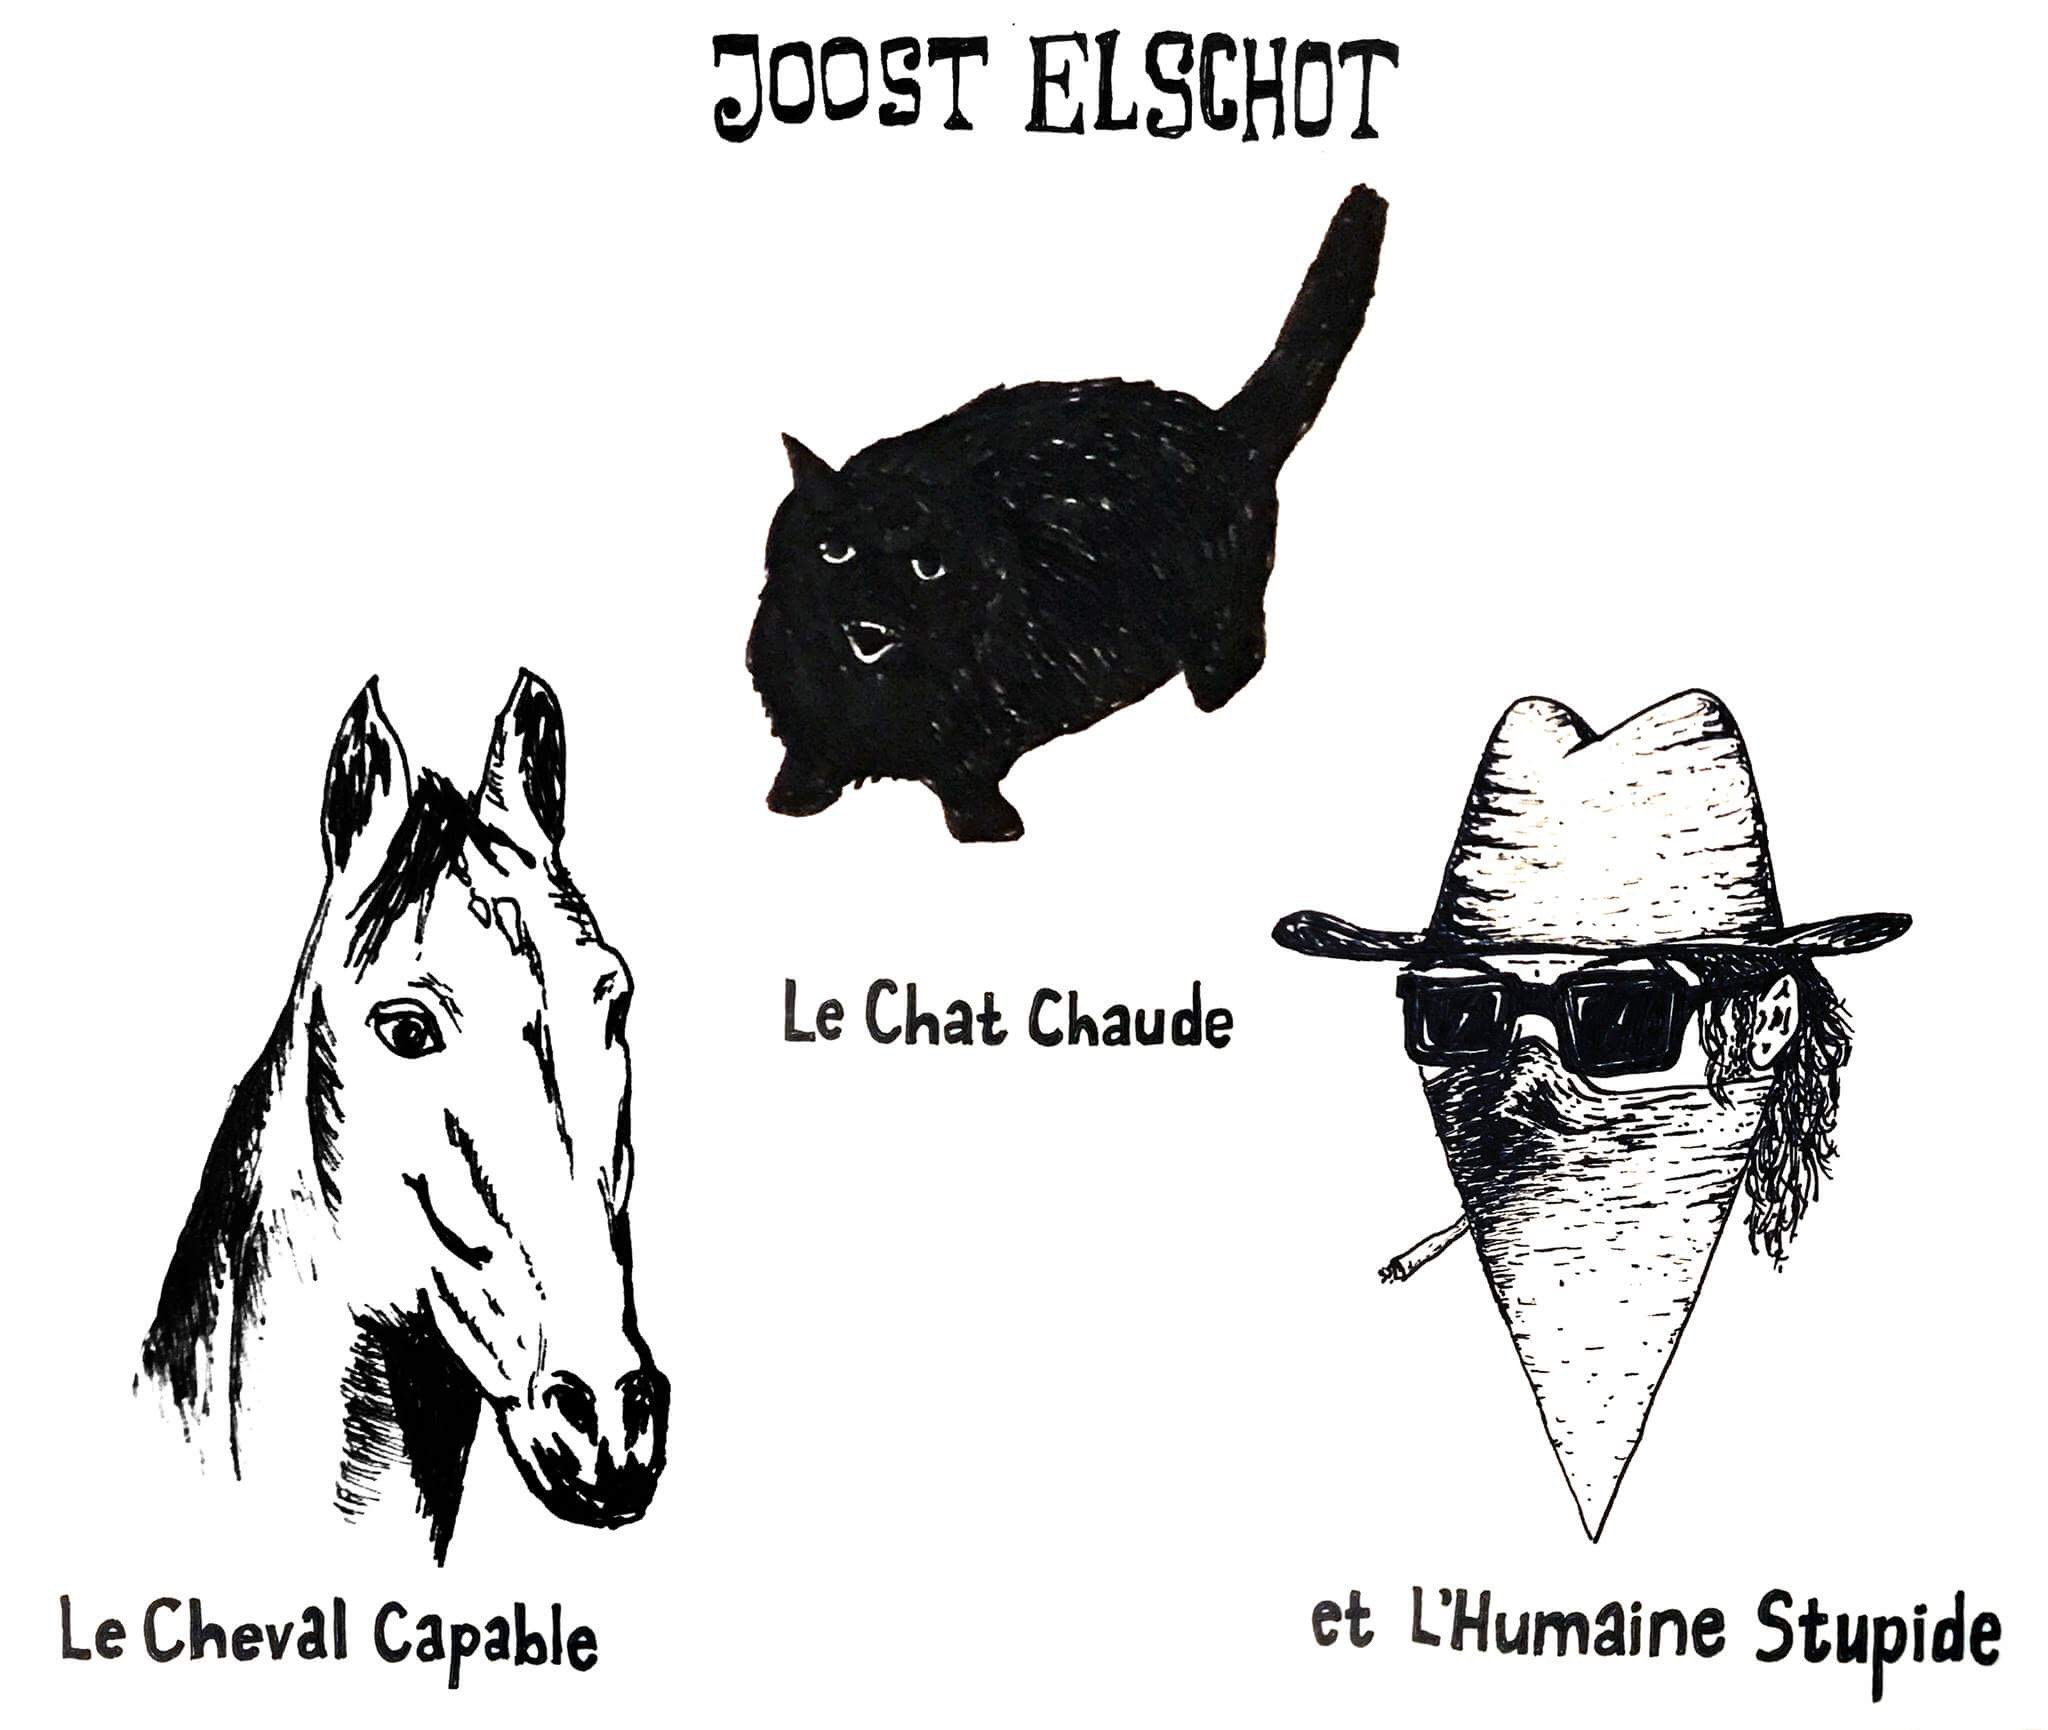 Joost Elschot: Le chat chaud, le cheval capable et l'humaine stupid